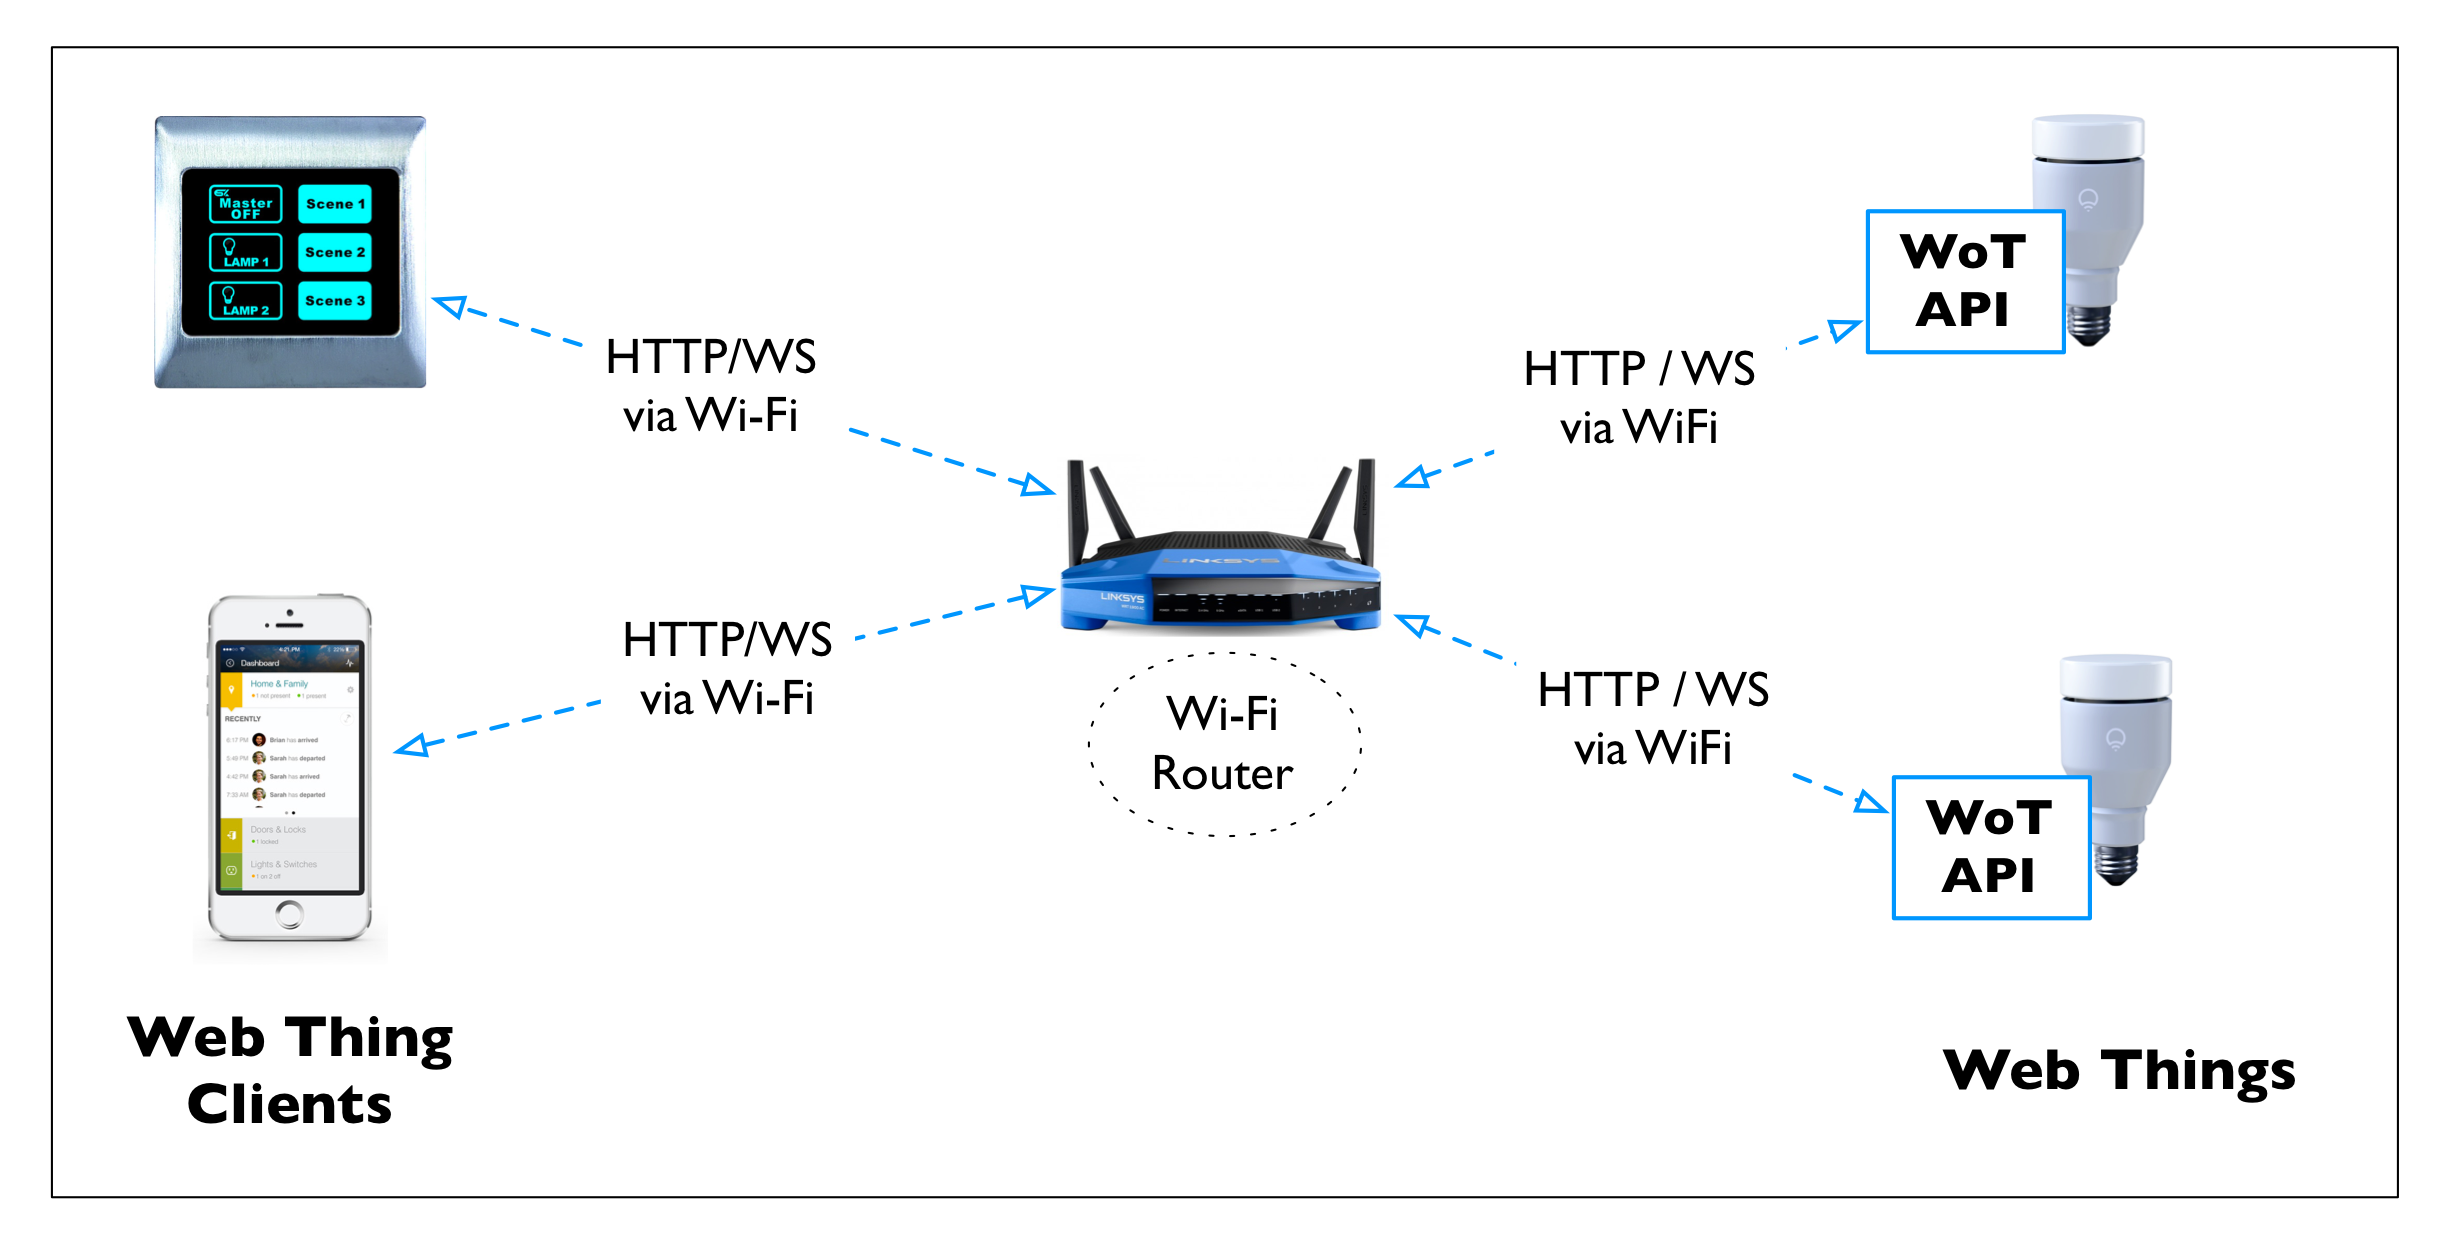 When a Web Thing exposes a Web API, Clients can directly connect to it, potential through a local address if they are both on the same network